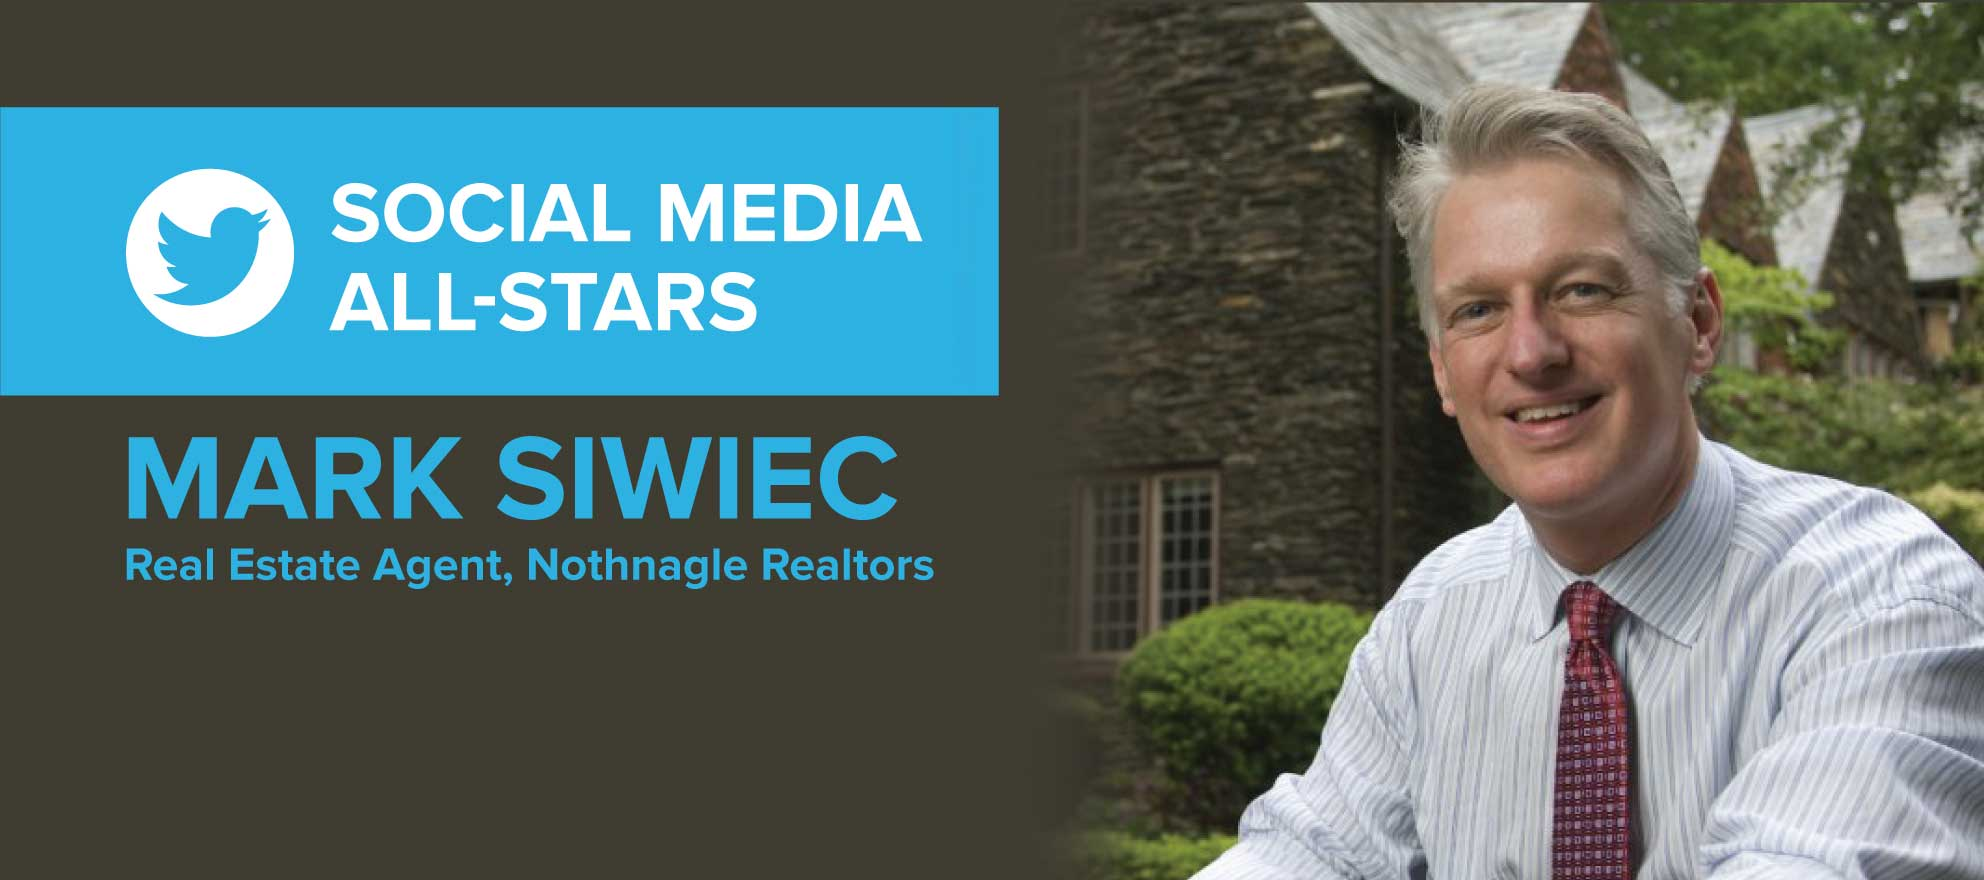 Mark Siwiec: 'When people think of me, I want them to see beyond real estate'